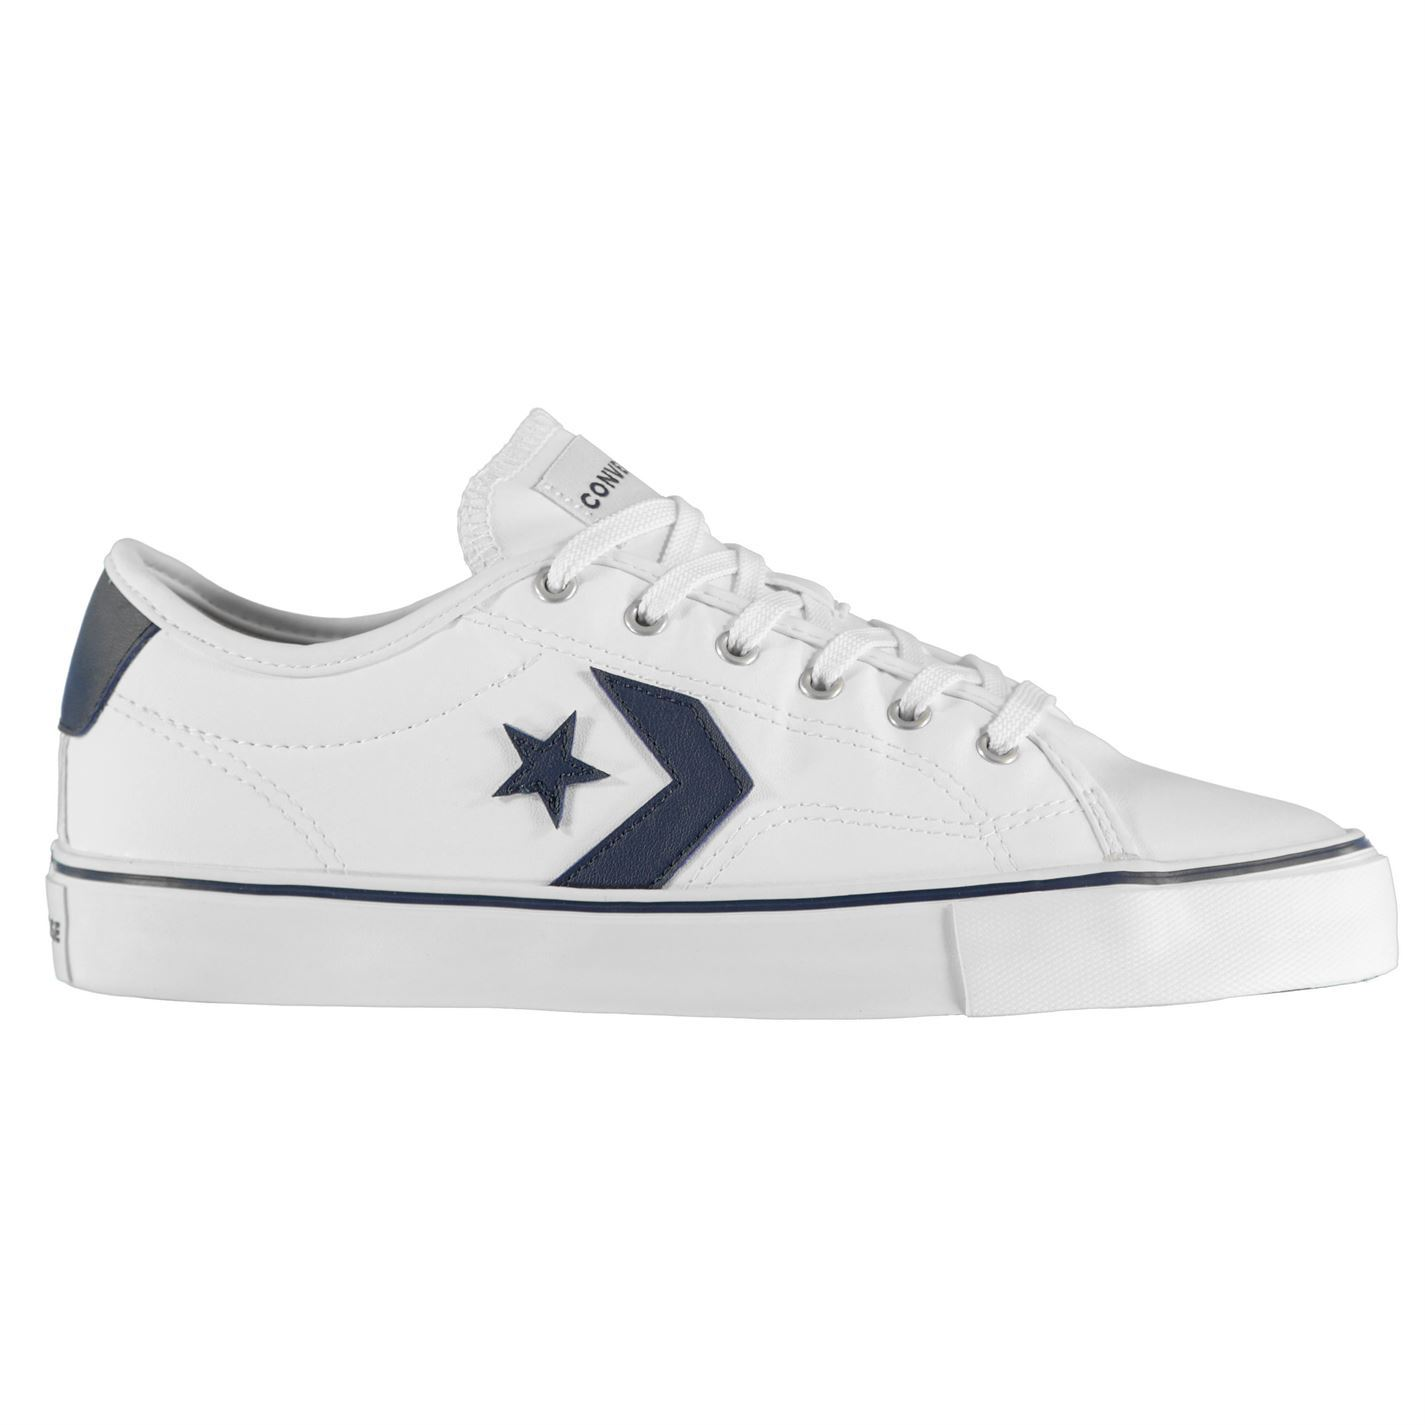 Converse-Ox-Replay-Low-Baskets-Pour-Homme-Chaussures-De-Loisirs-Chaussures-Baskets miniature 16